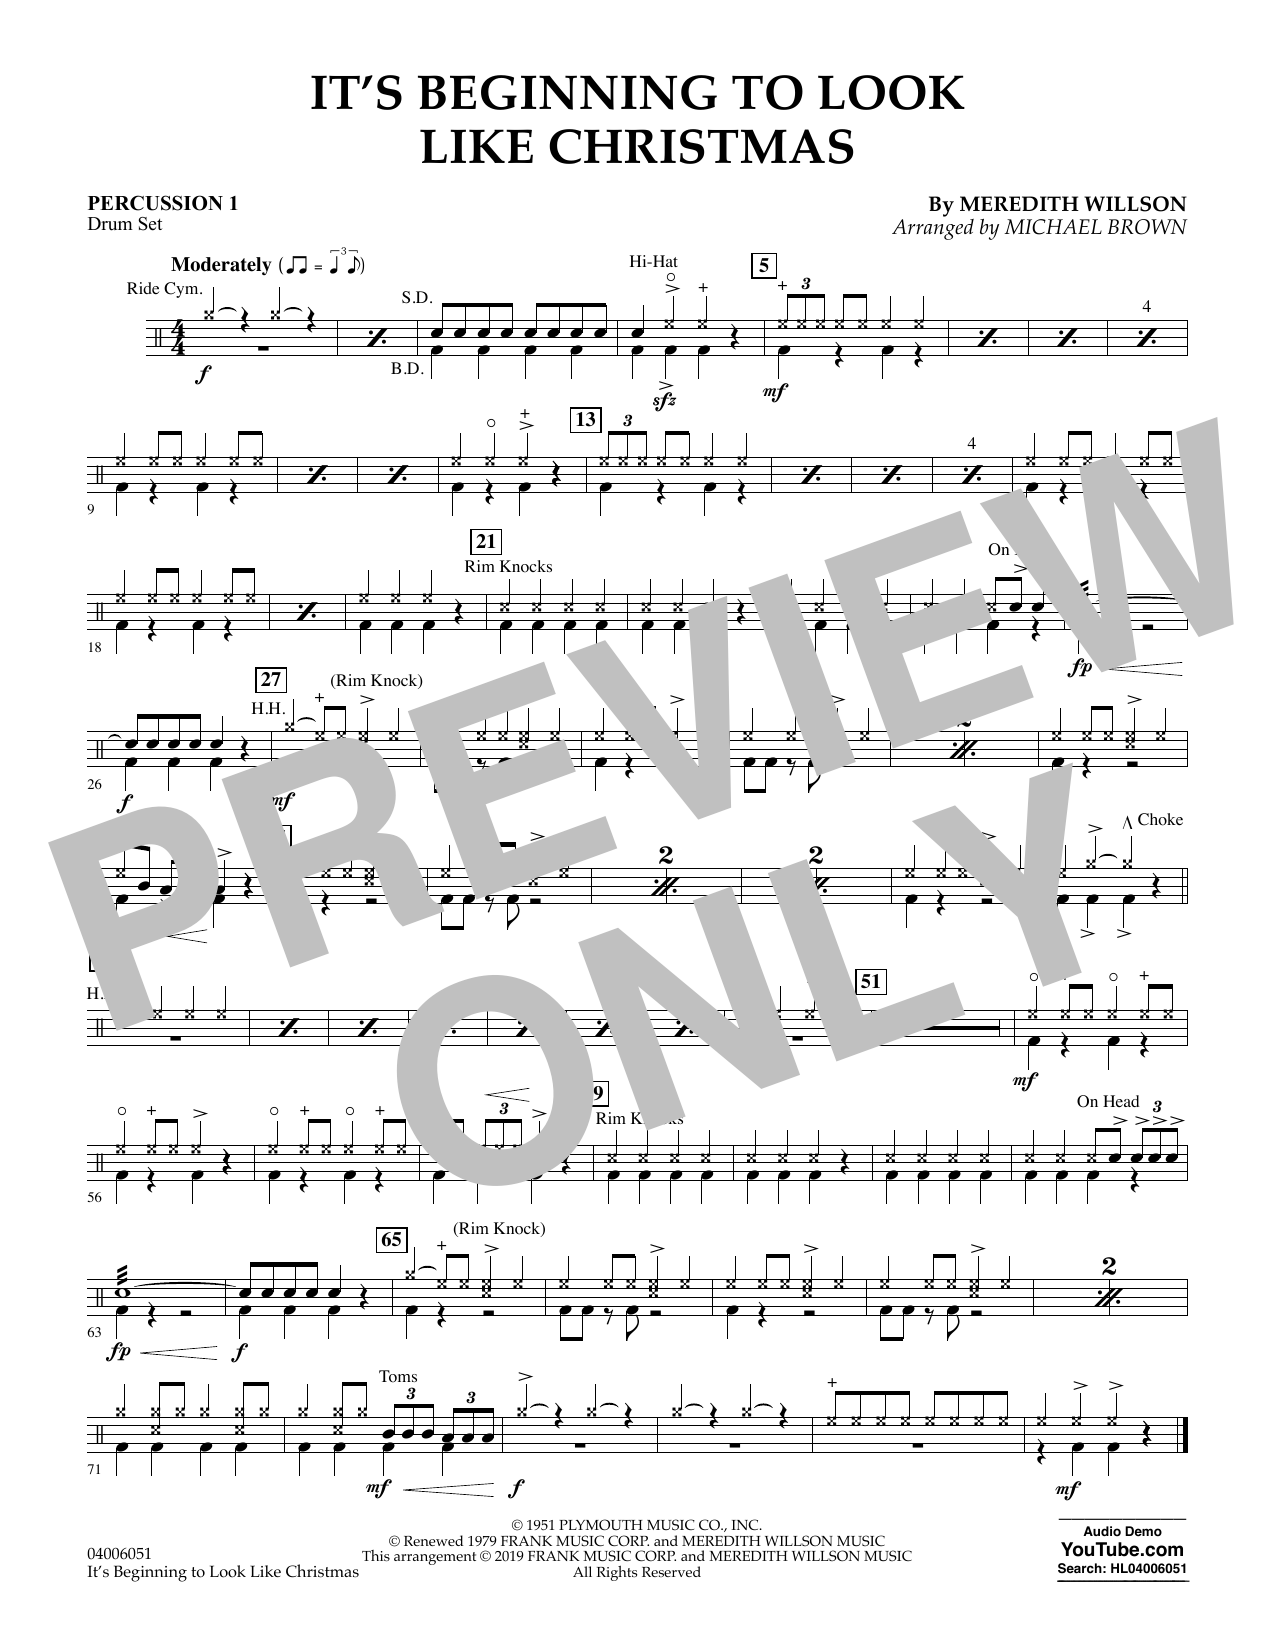 It's Beginning to Look Like Christmas (arr. Michael Brown) - Percussion 1 (Flex-Band)